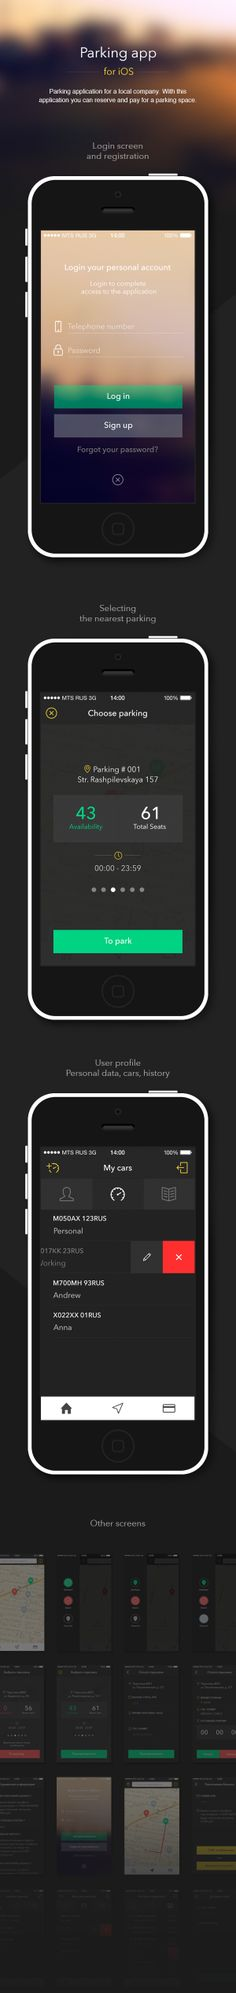 Parking application for a local company. With this application you can reserve and pay for a parking space. Web Design, Ios App Design, Mobile Ui Design, User Interface Design, Mobile Login, App Login, Mobile App, Parking App, Parking Space